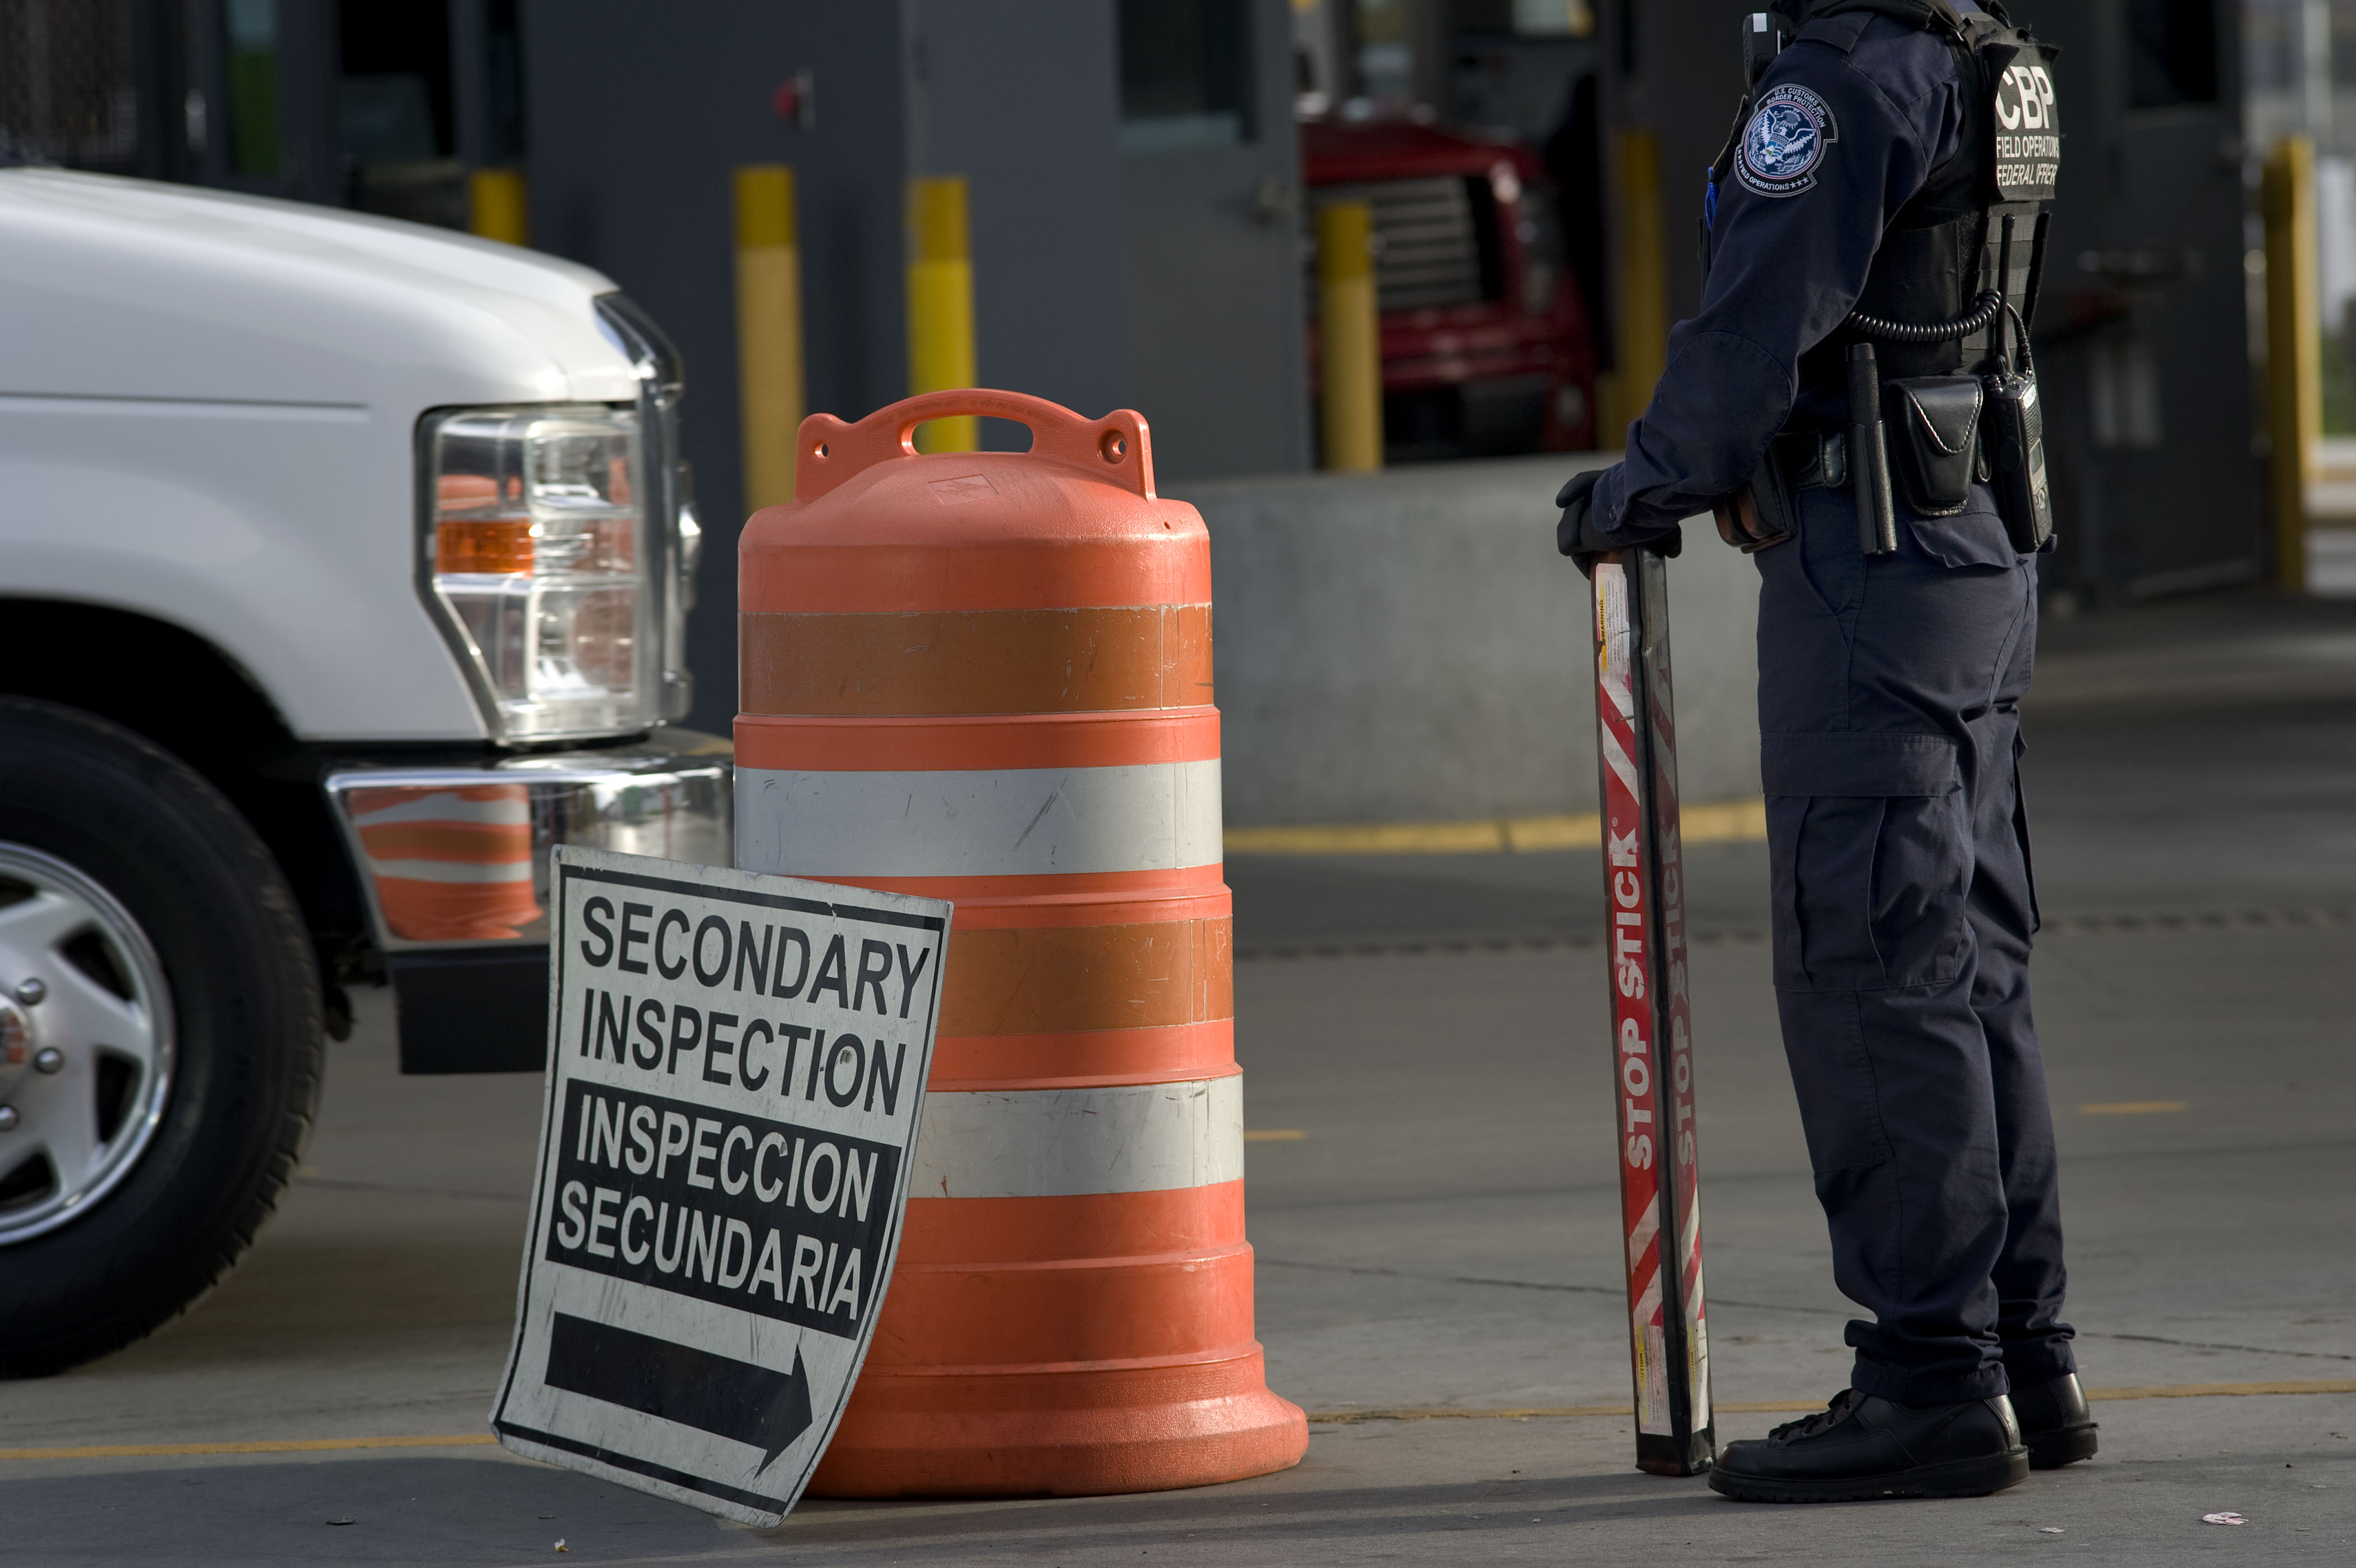 Border searches of electronic devices